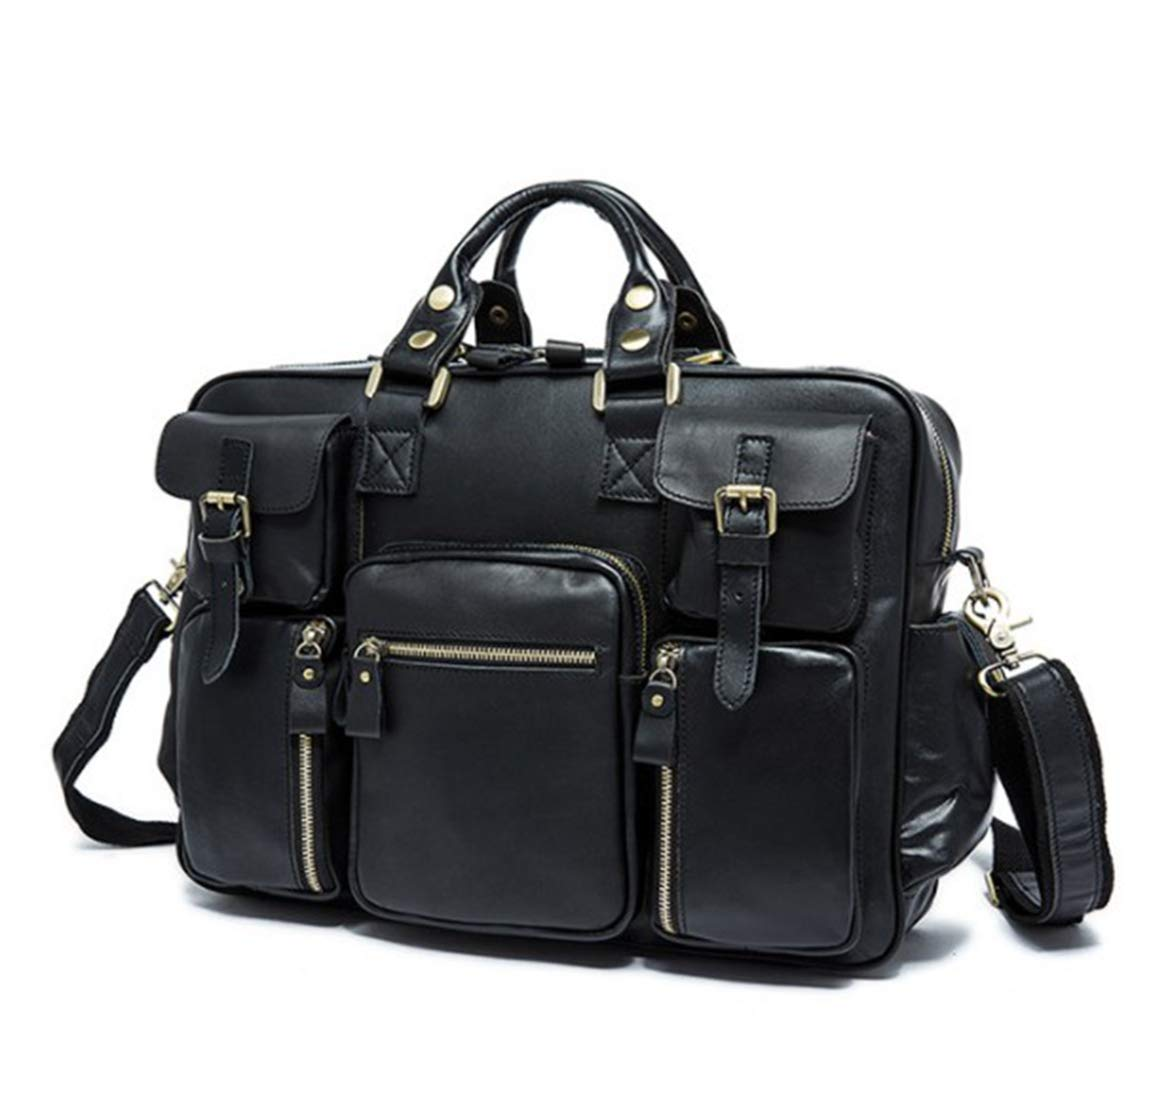 MATCHANT Leather Large-Capacity Portable Travel Bag Mens Multi-Purpose Travel Duffel Bag Color : Black